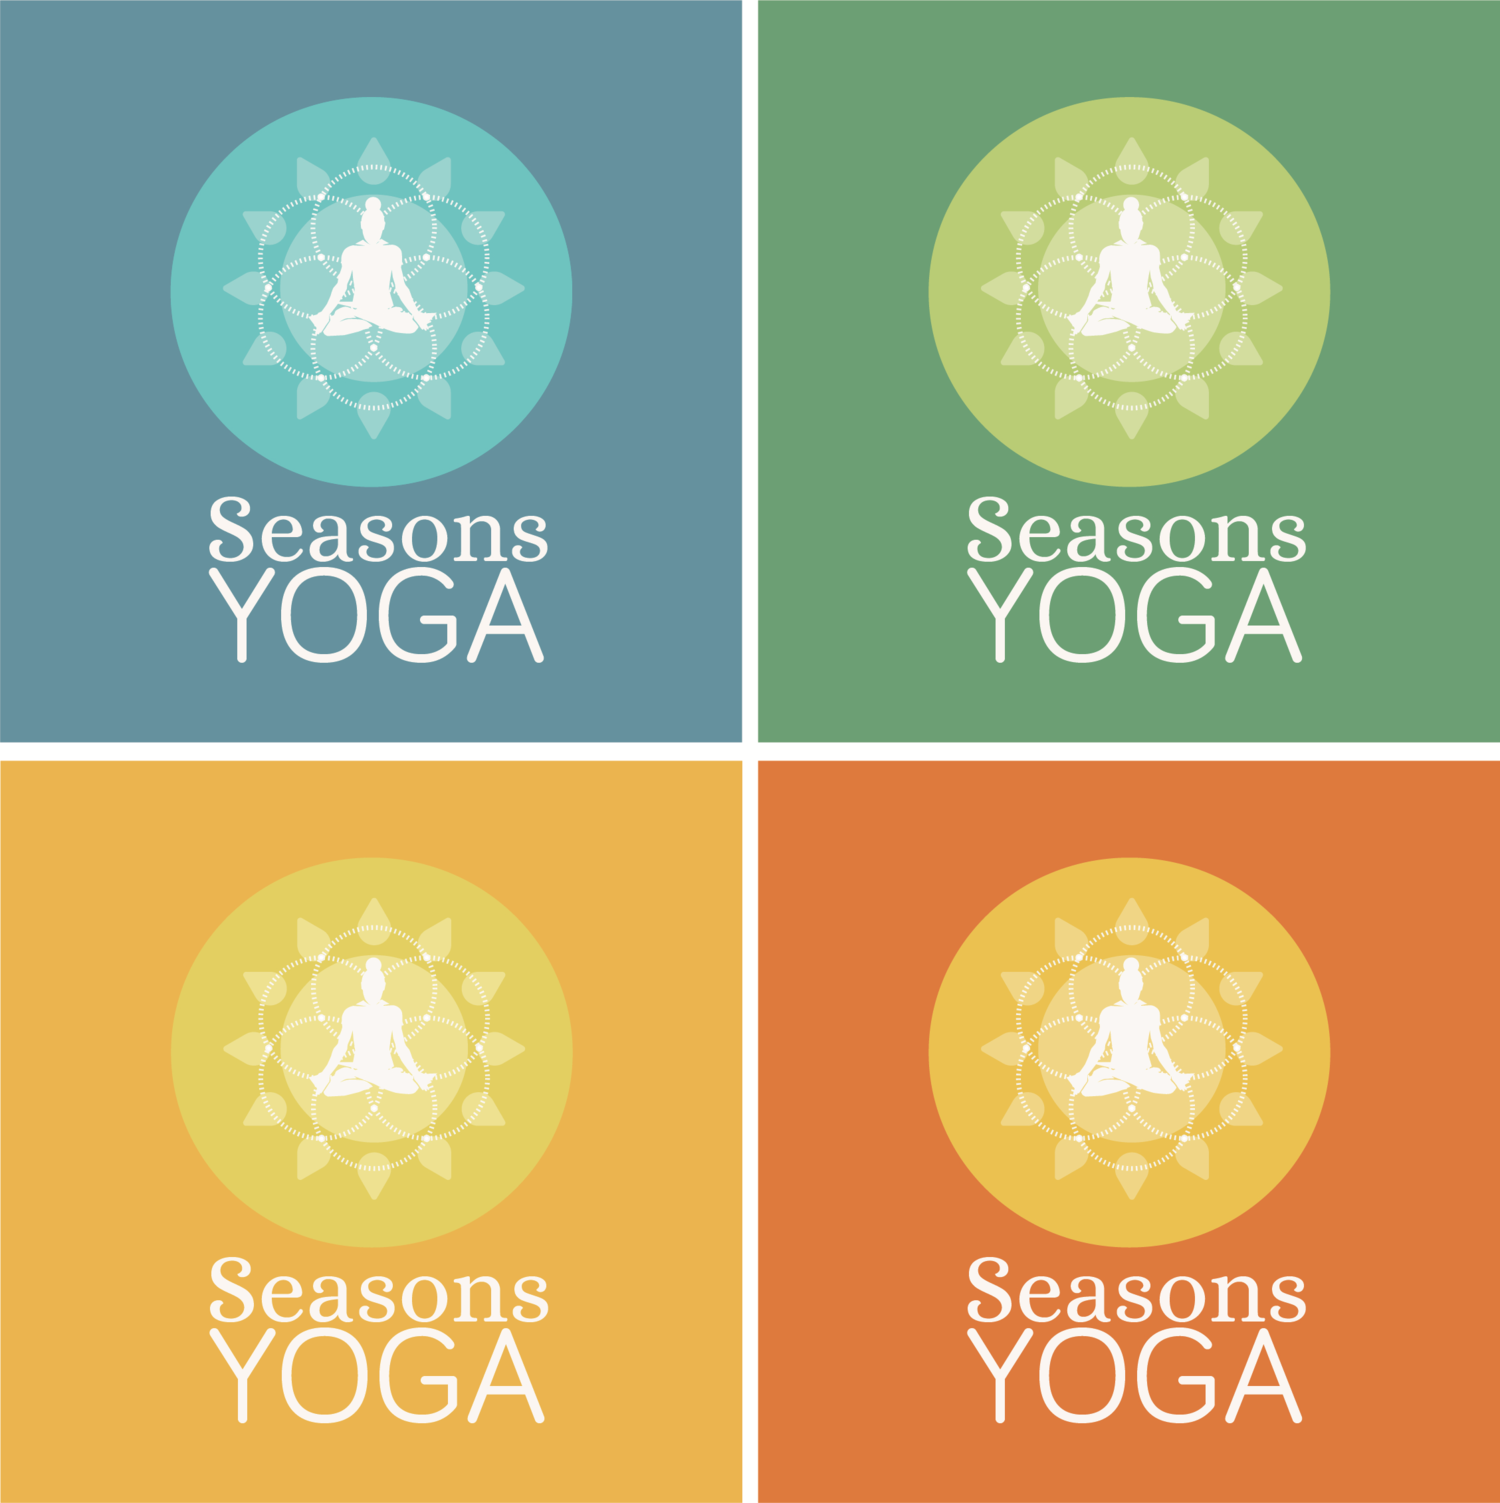 Seasons Yoga